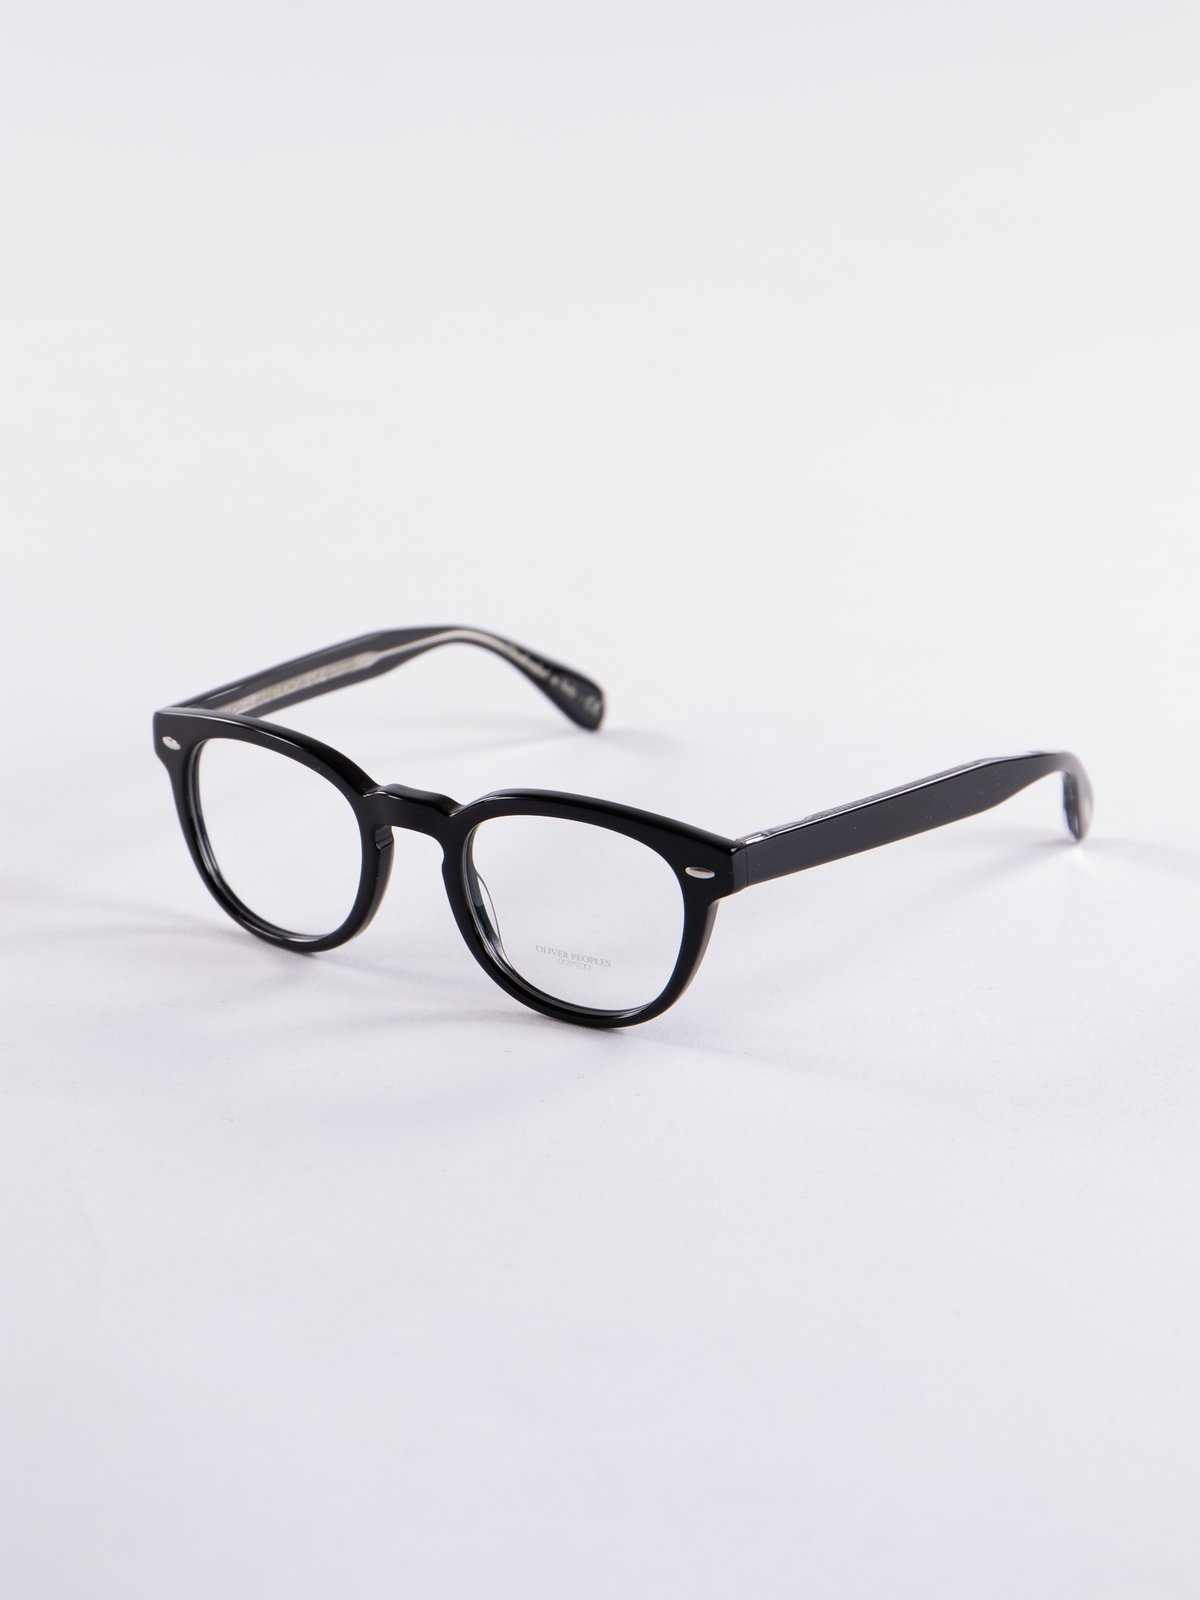 Black Sheldrake Optical Frame - Image 3